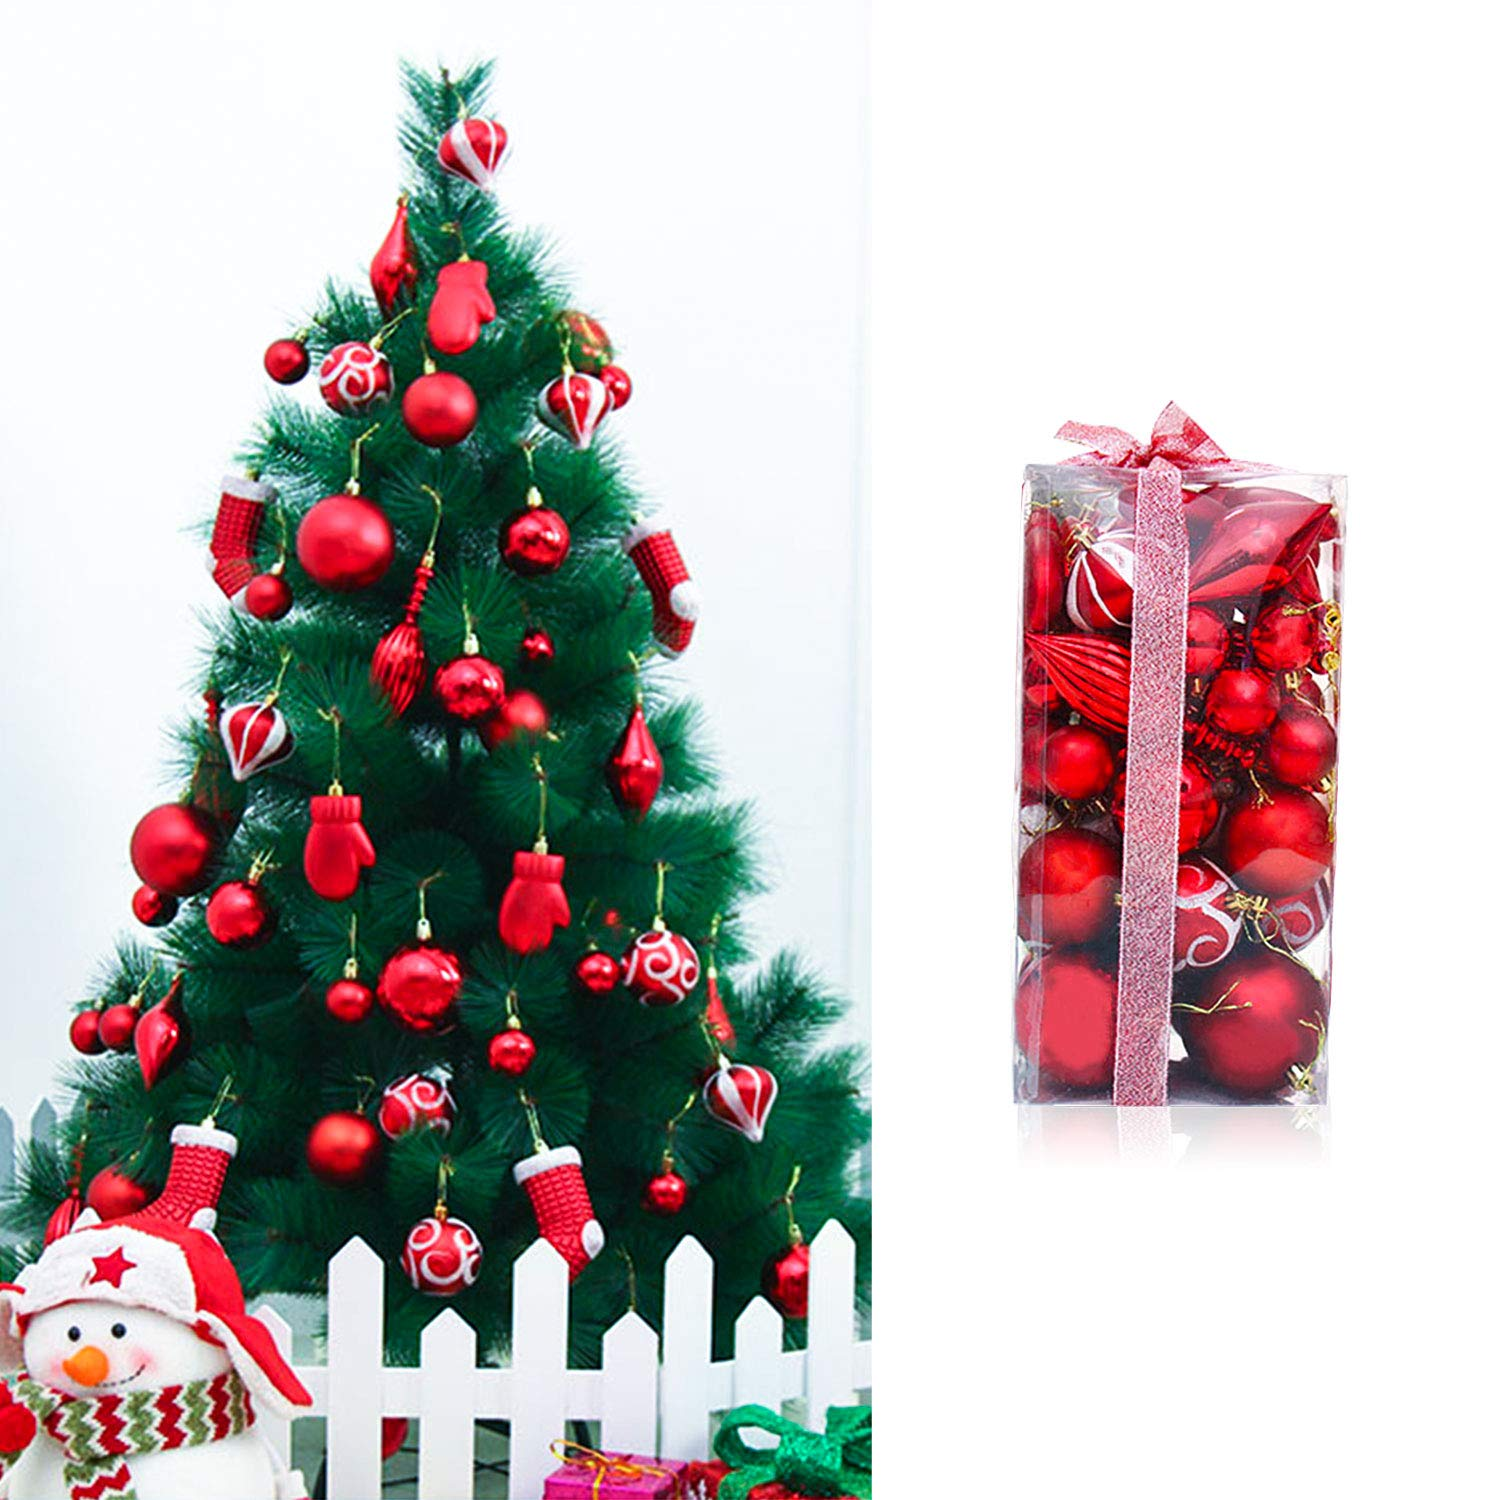 MOOSENG 50-Pack Assorted Shatterproof Christmas Ball Ornaments Set Decorative Baubles Pendants with Premium Gift Wrapping Ribbon for Xmas Tree Gold